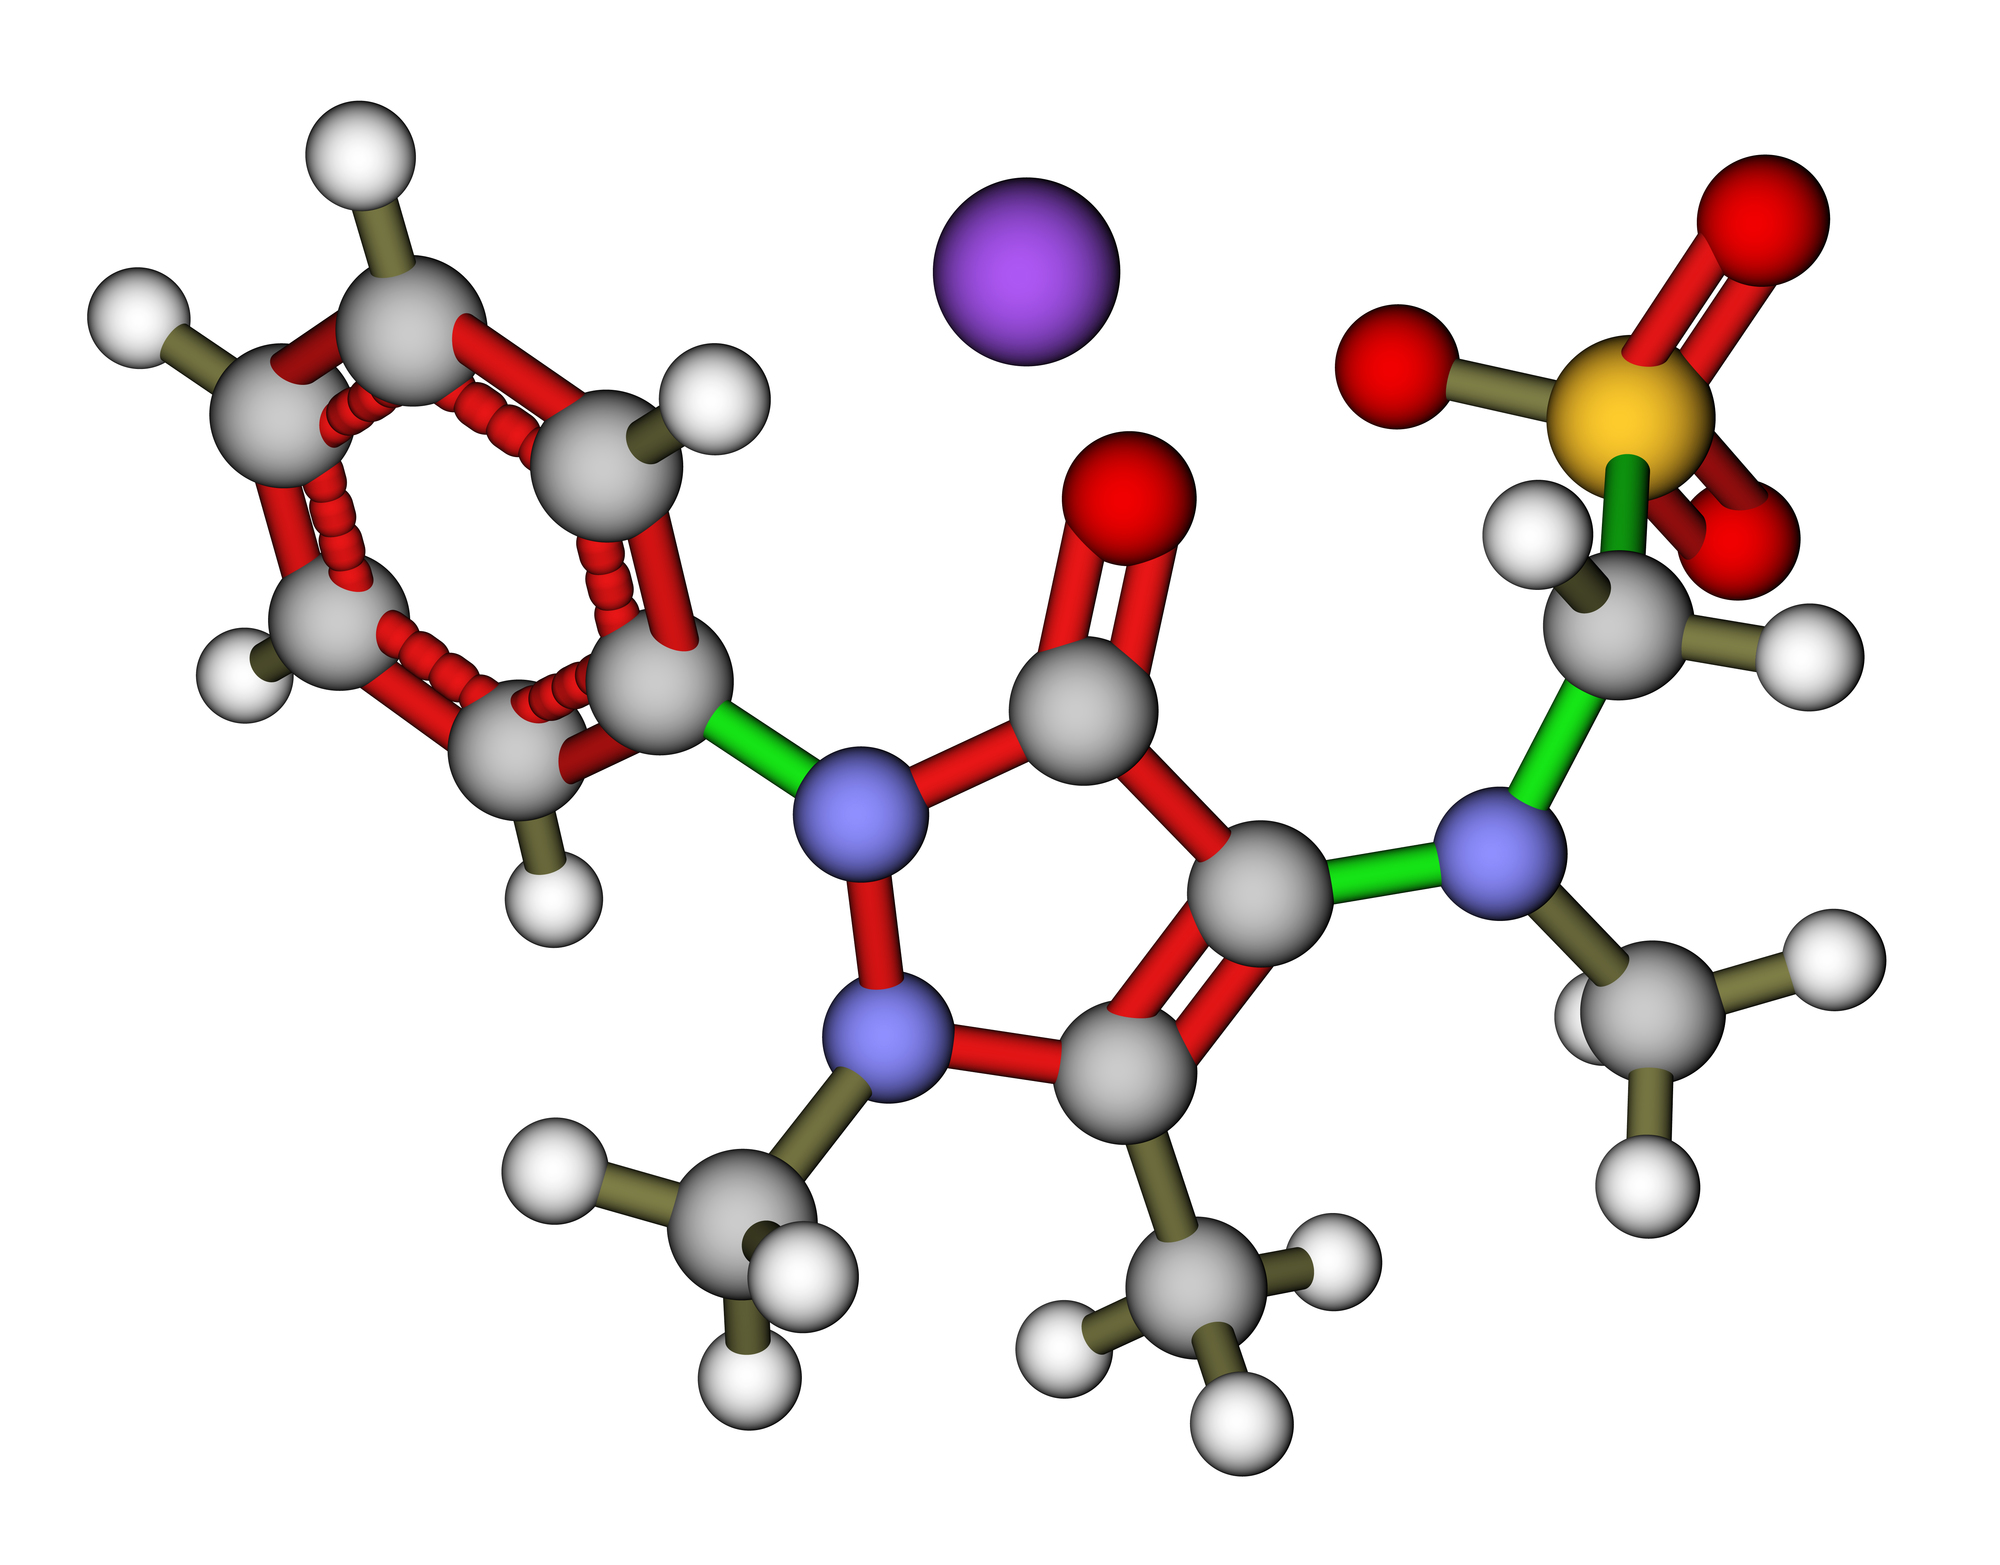 Metamizole, an analgesic and antipyretic drug. 3D molecular structure